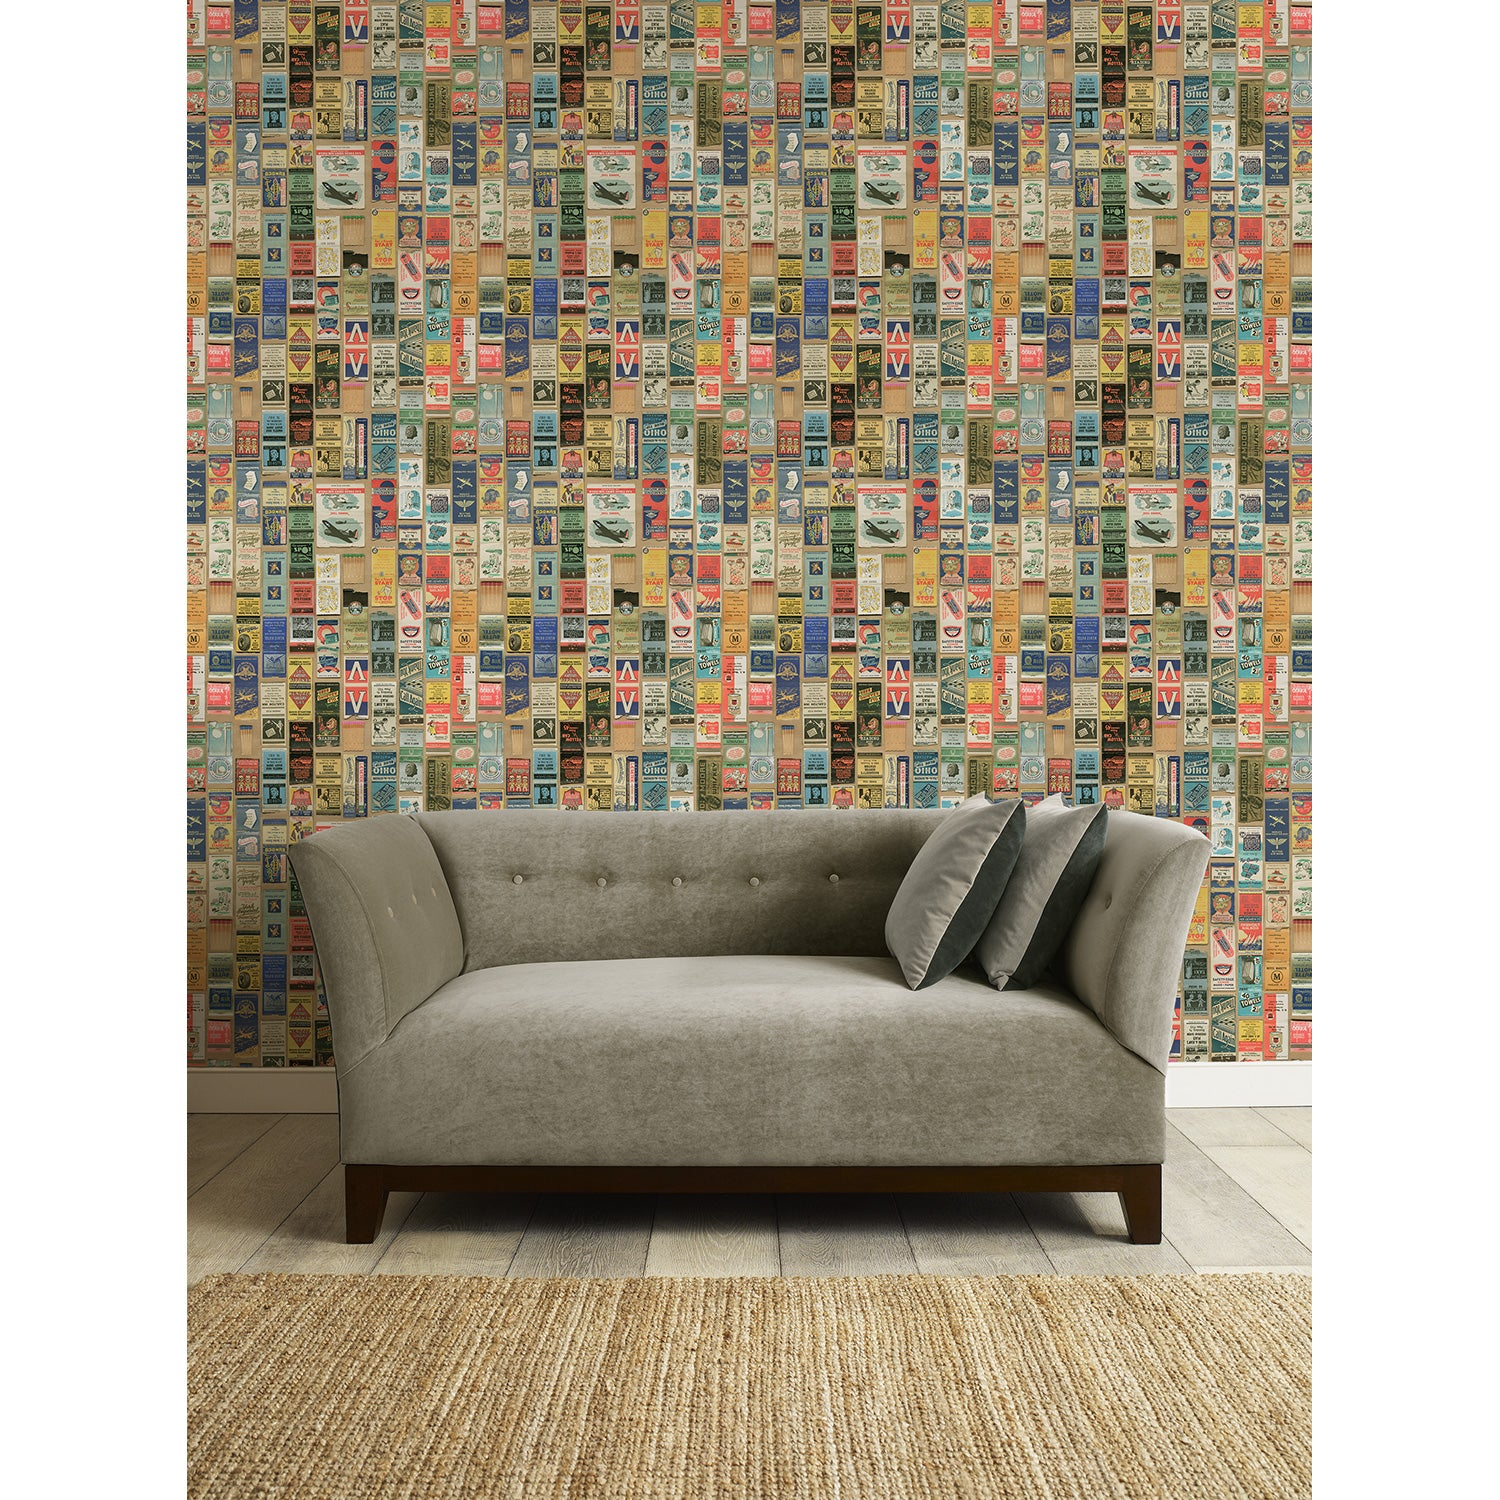 Nightspot Wallpaper - Feature wallpaper for walls with vintage matchbox design